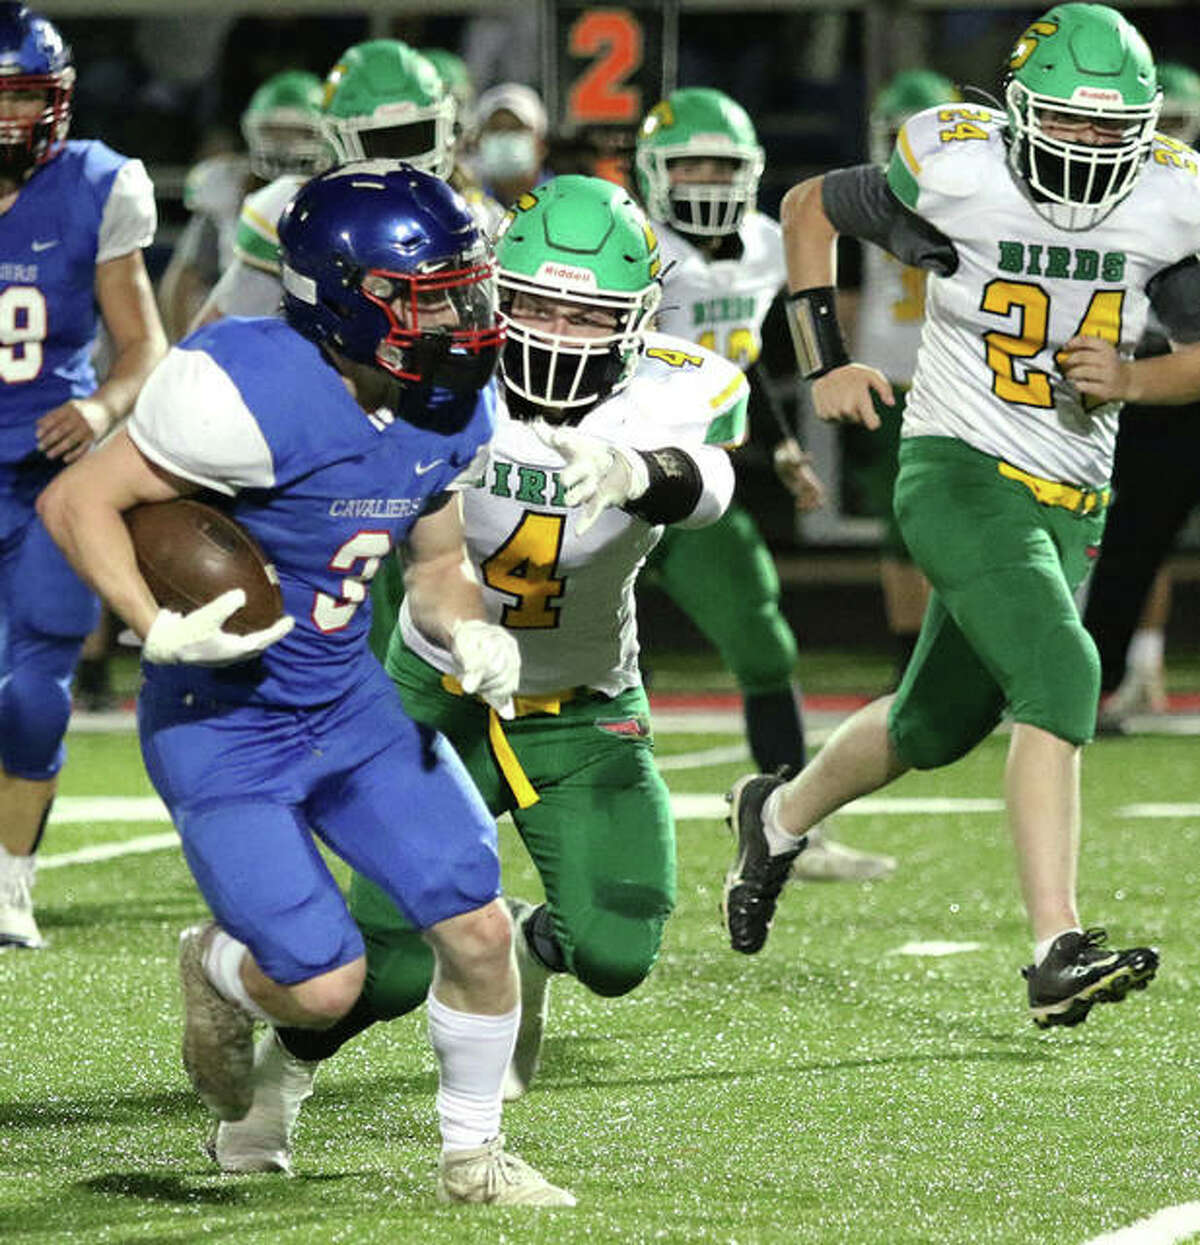 Carlinville's Bobby Seal (3) gets away from Southwestern's Blake Funk (4) during a SCC game April 9 in Carlinville. Seal, who rushed for 224 yards and four TDs in the Cavaliers' win over the Piasa Birds, is the 2020 Telegraph Small-Schools Football Player of the Year.